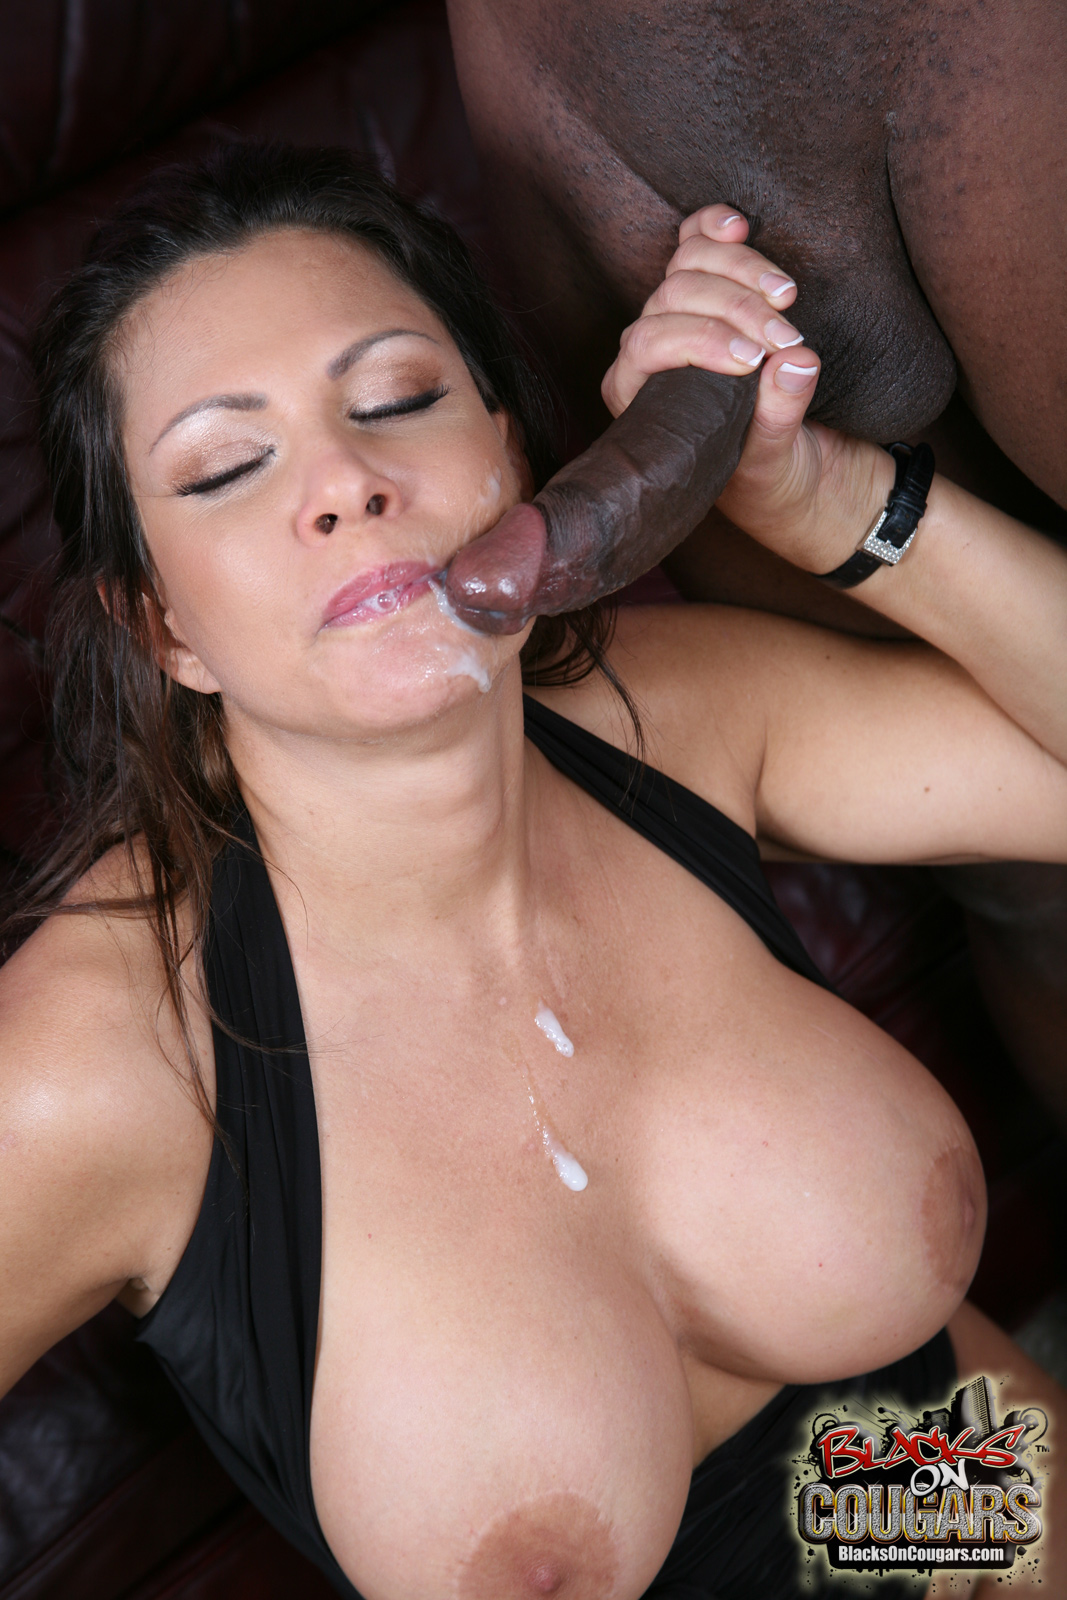 Cougar and black sex #2